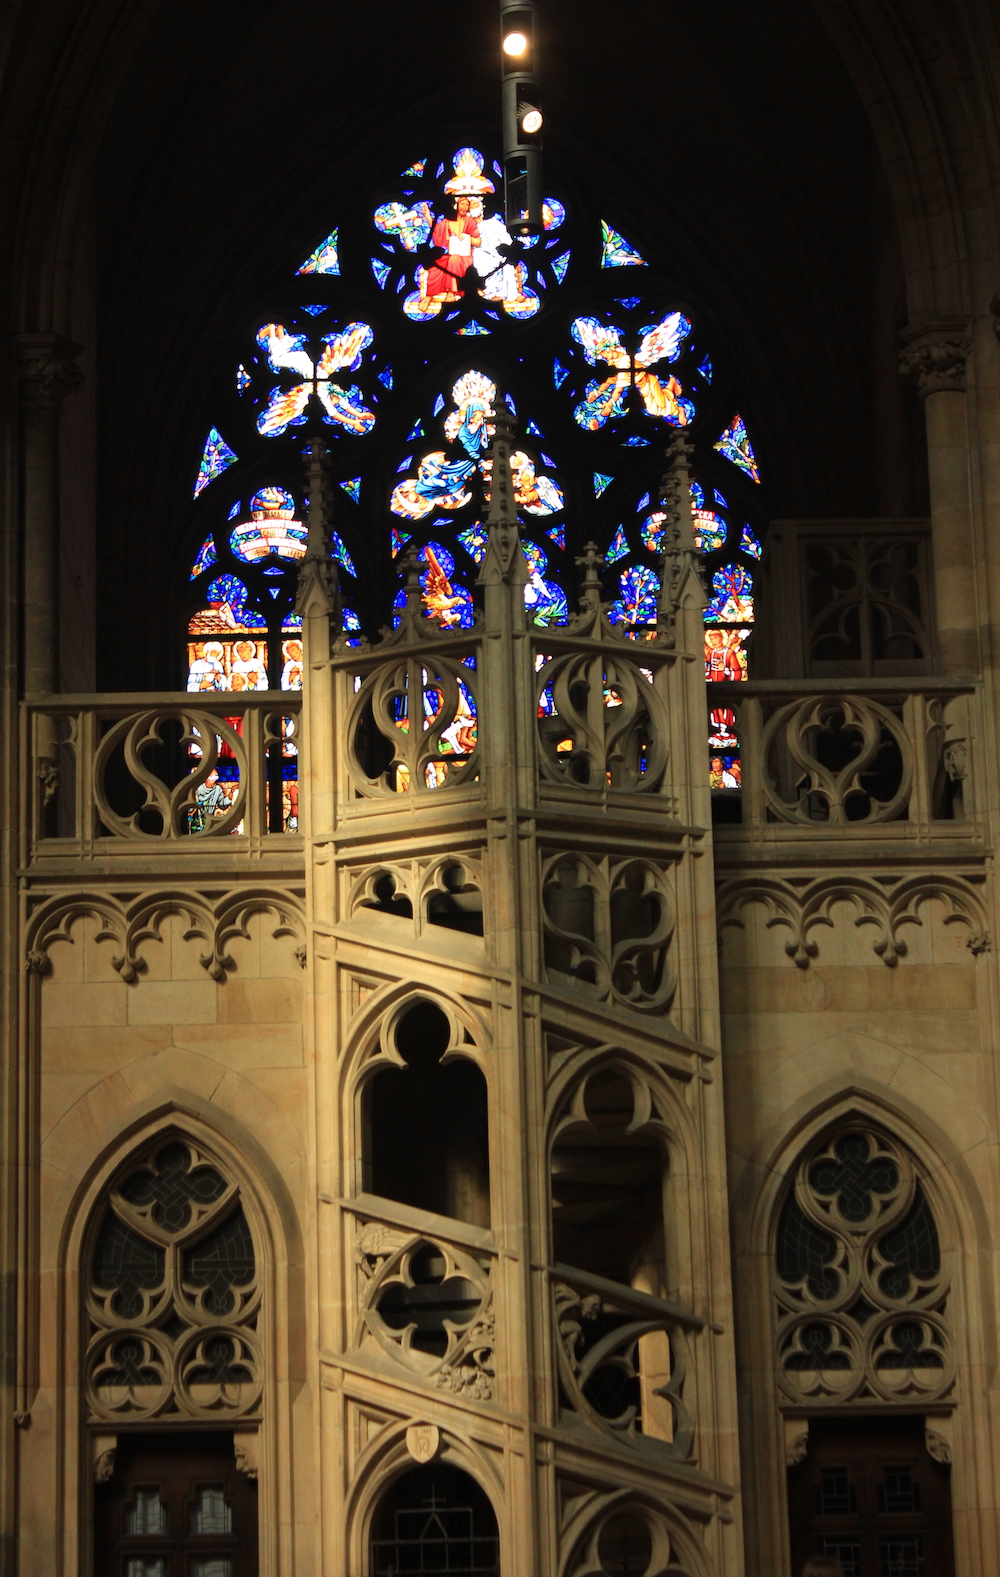 Stained glass window by Alfons Mucha in St. Vitus Cathedral   Photo credit: Rose Spaziani